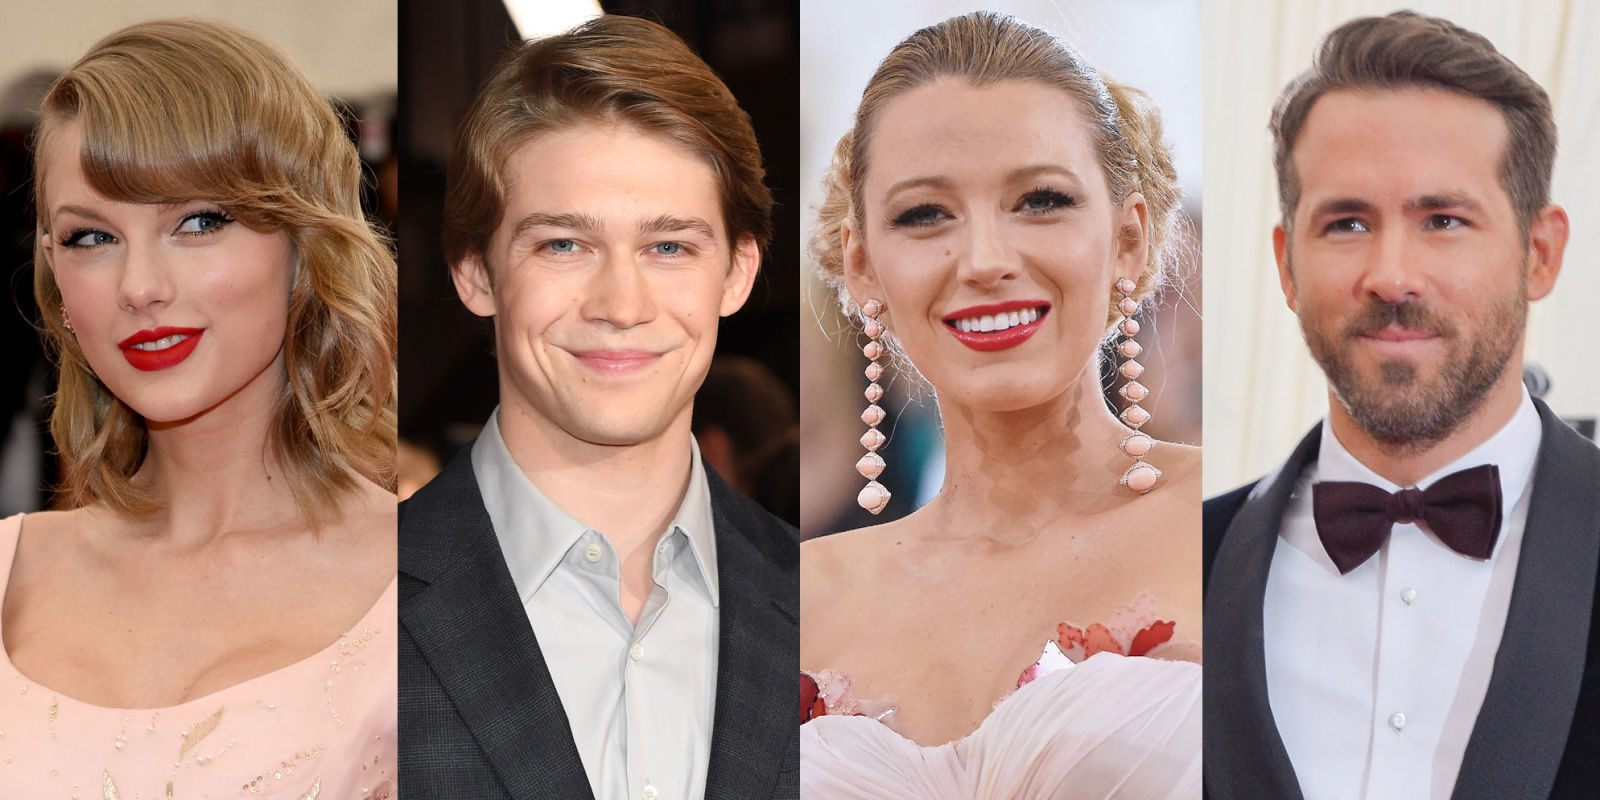 Taylor Swift and Joe Alwyn Reportedly Had Your Dream Double Date With Blake Lively and Ryan Reynolds